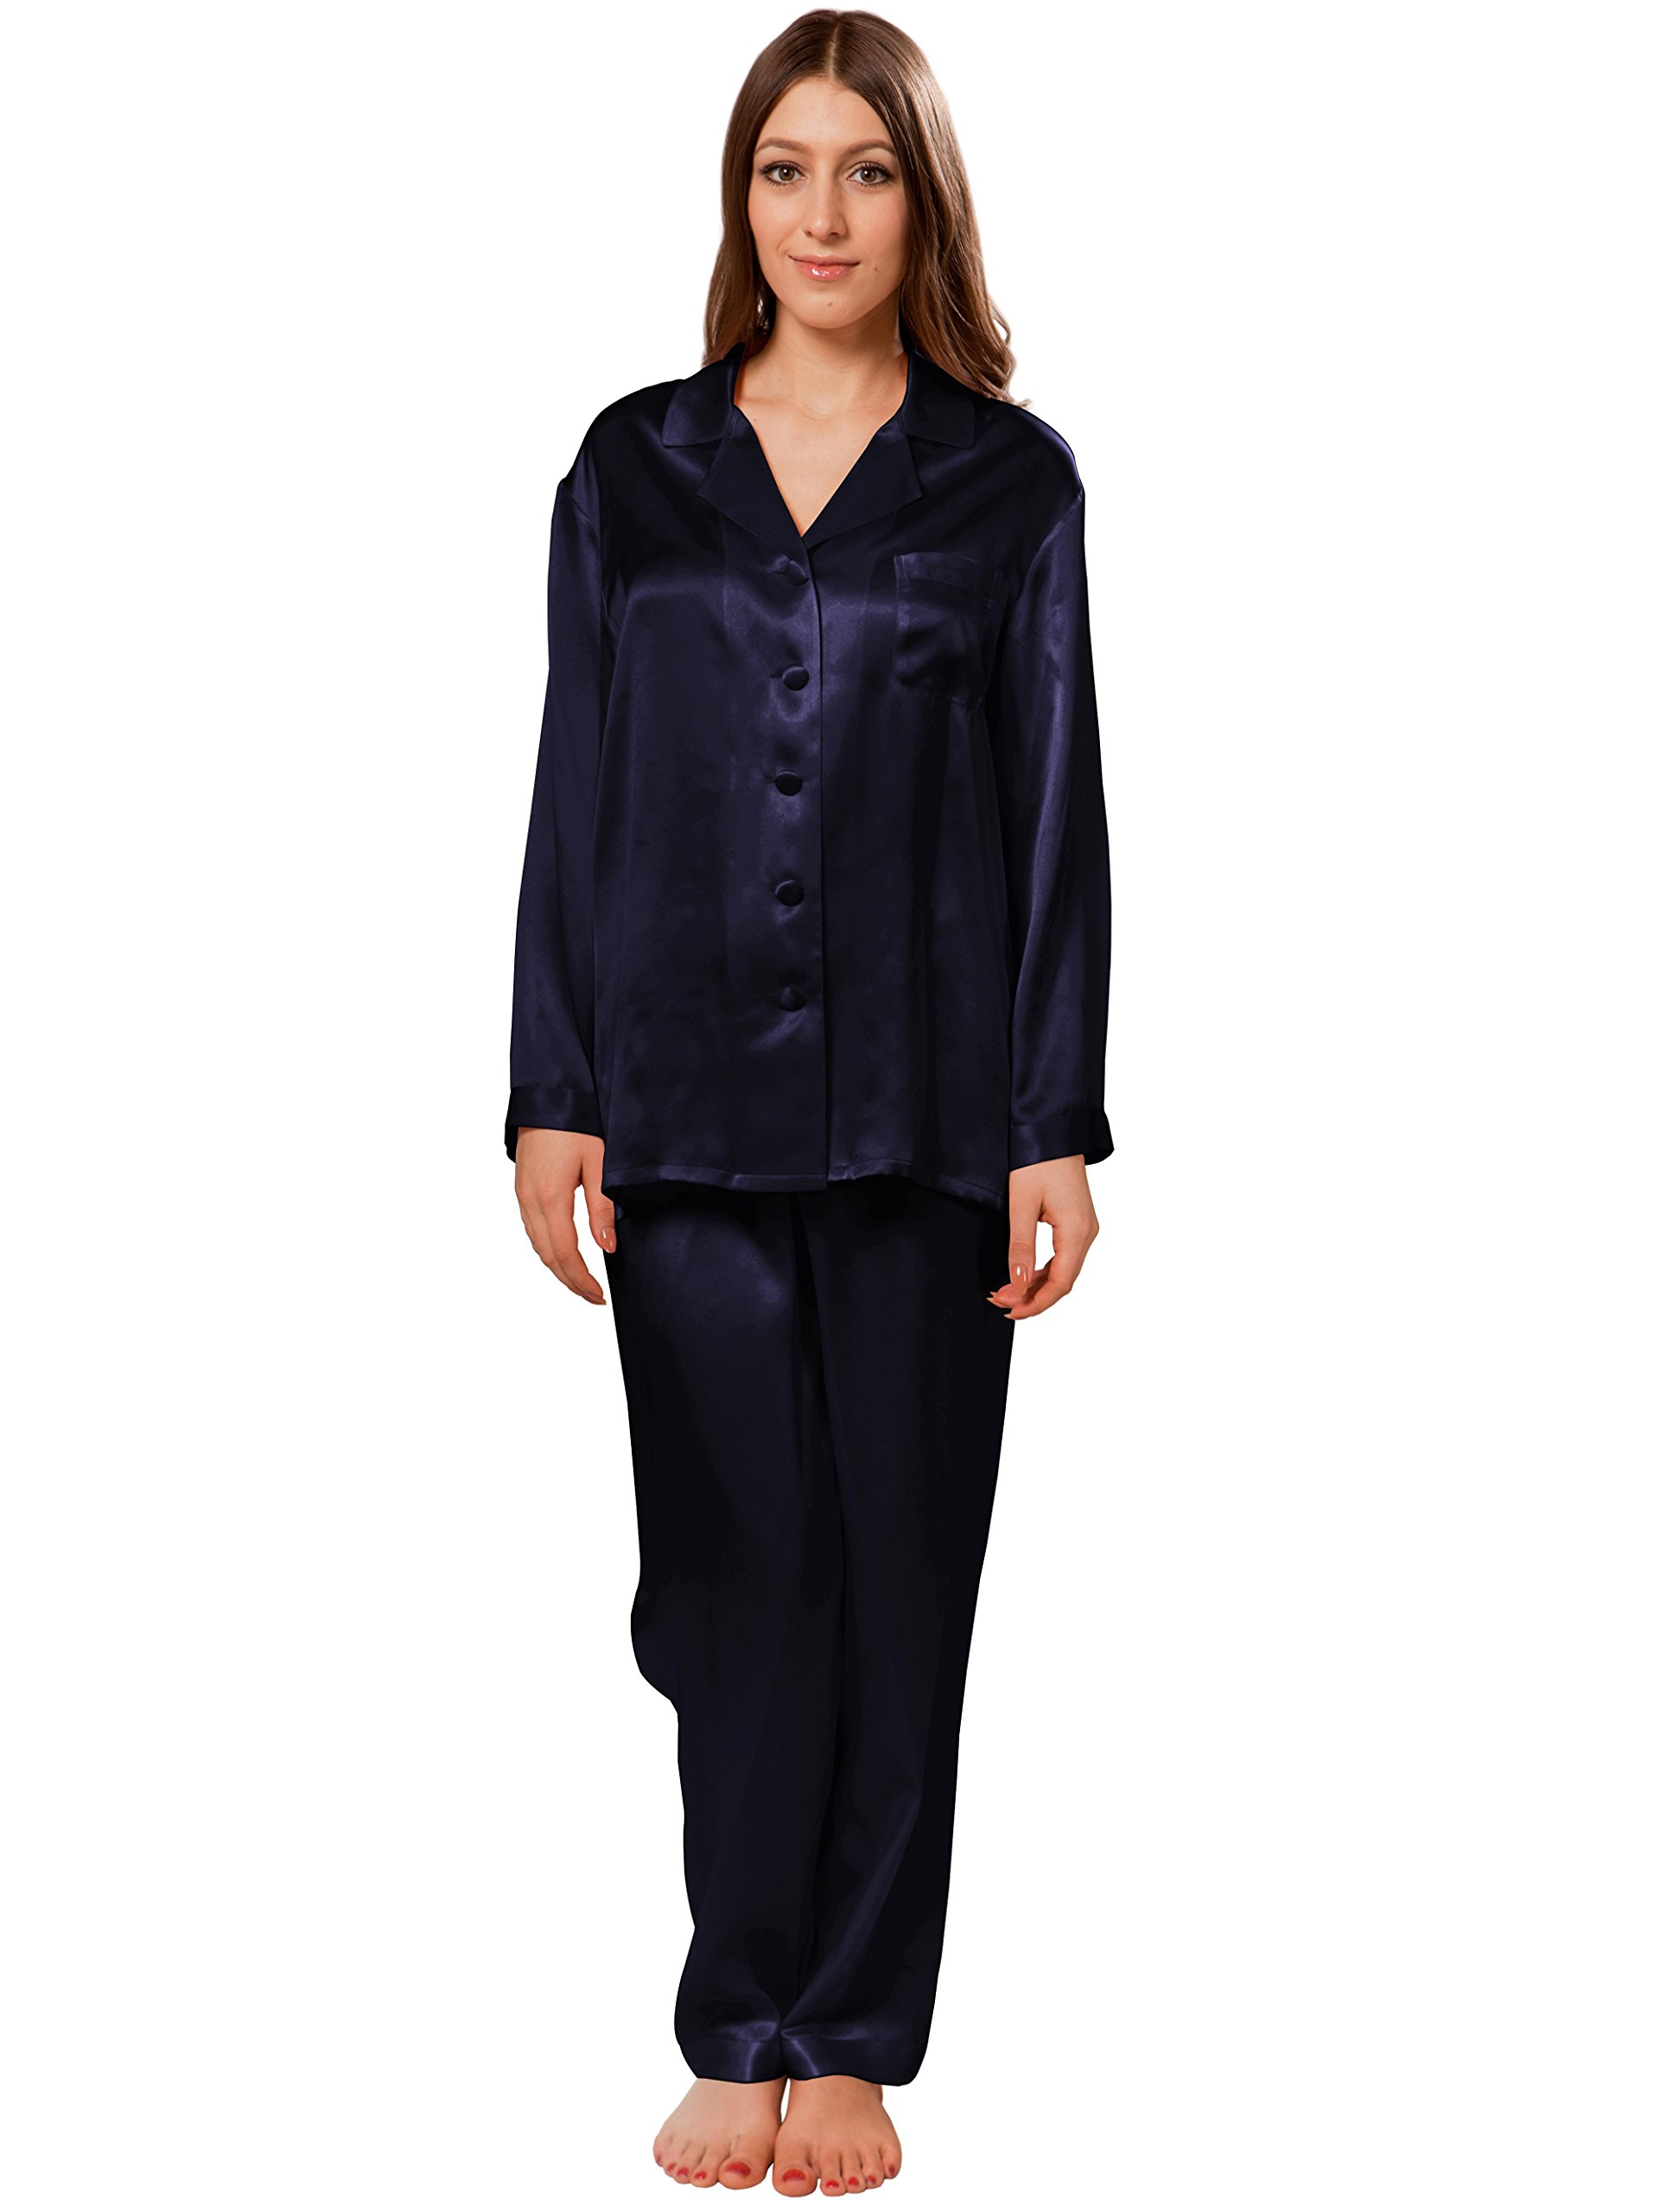 ElleSilk Pajamas For Women, Mulberry Silk Nightwear, Premium Quality, Super Comfortable, Navy, M